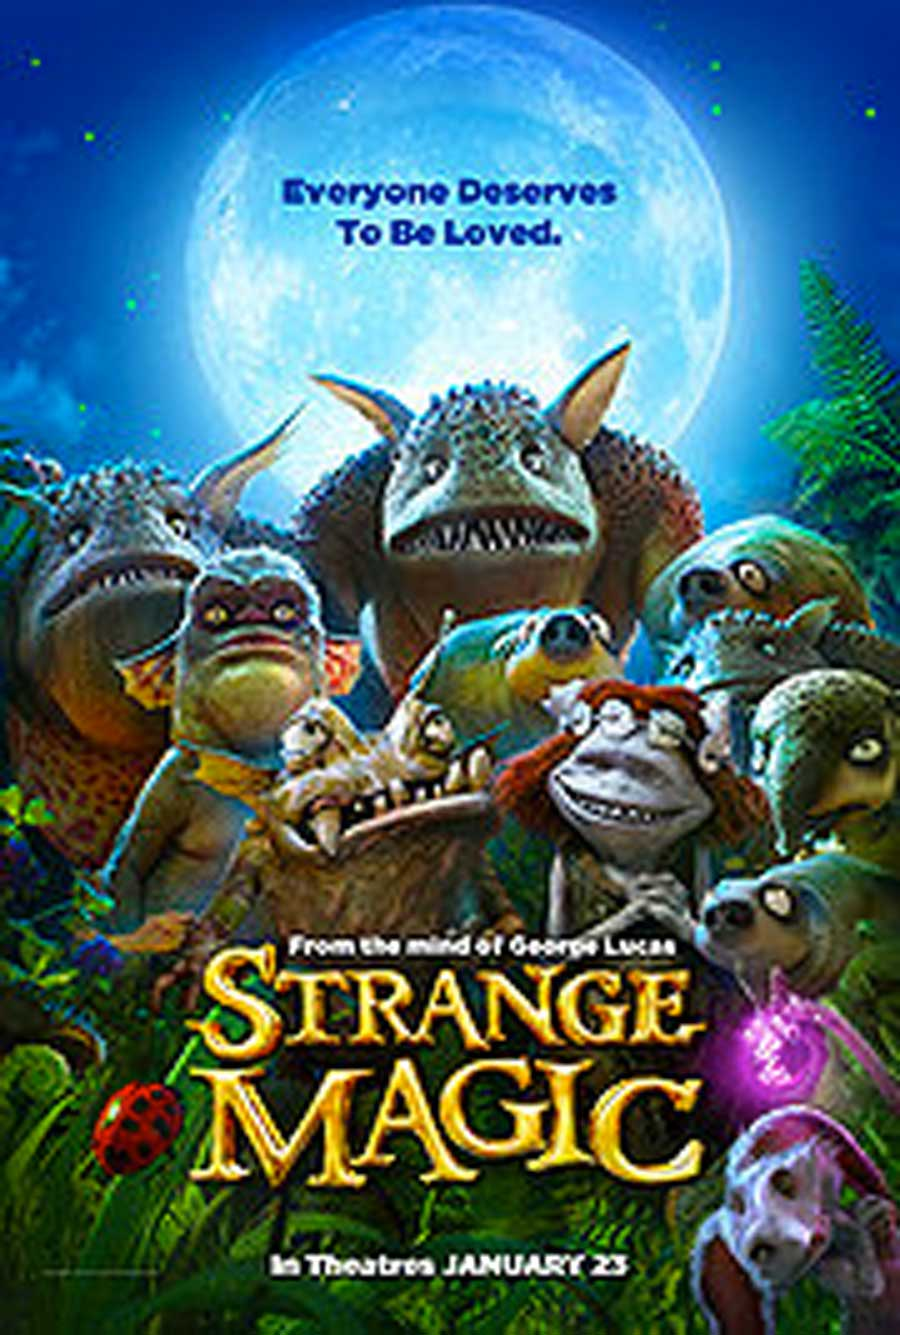 Poster for Strange Magic